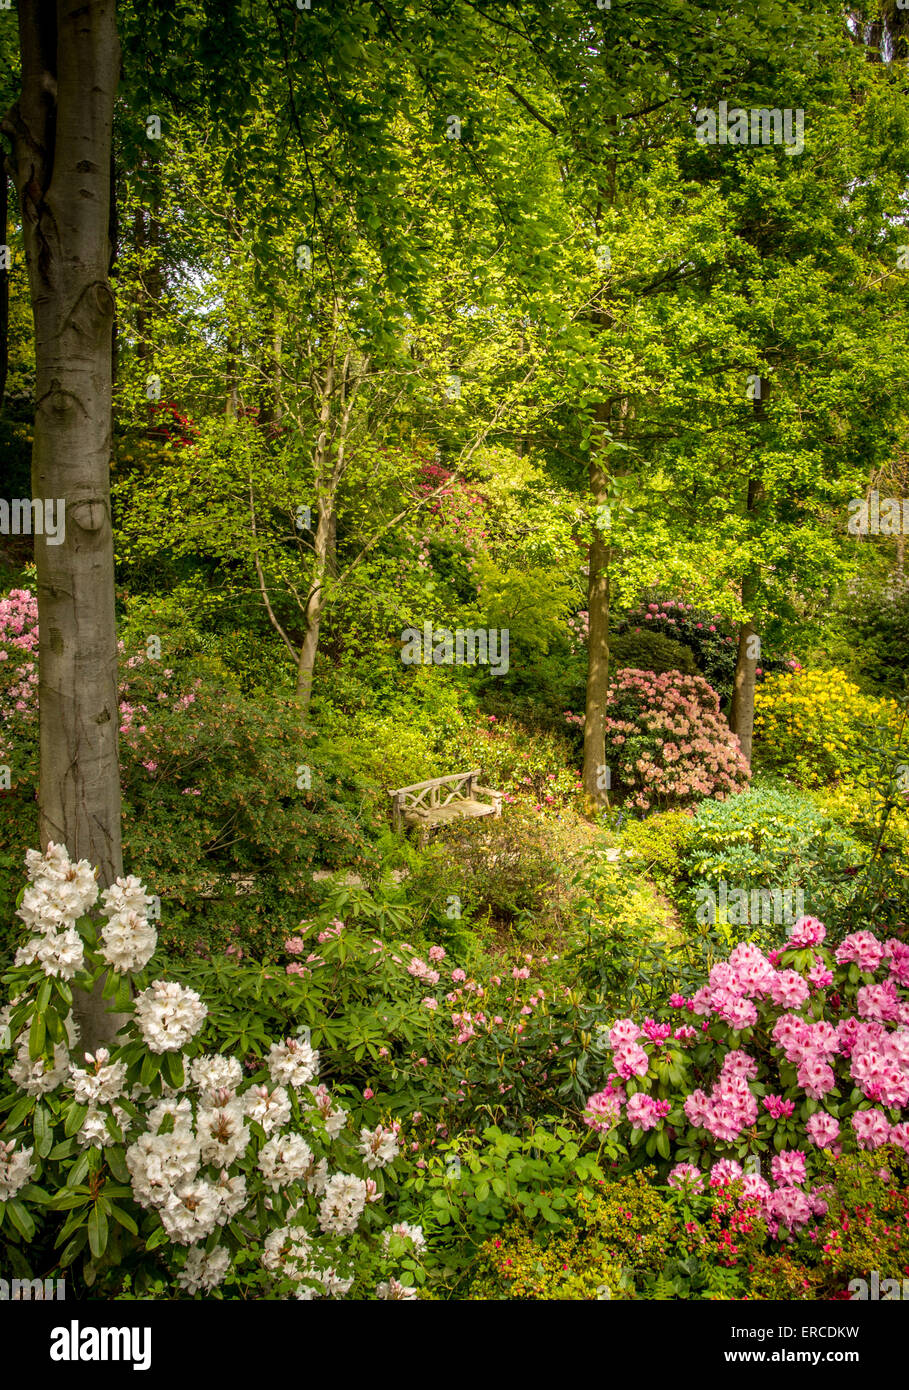 Rhododendron flowering in Himalayan Garden, North Yorkshire. - Stock Image